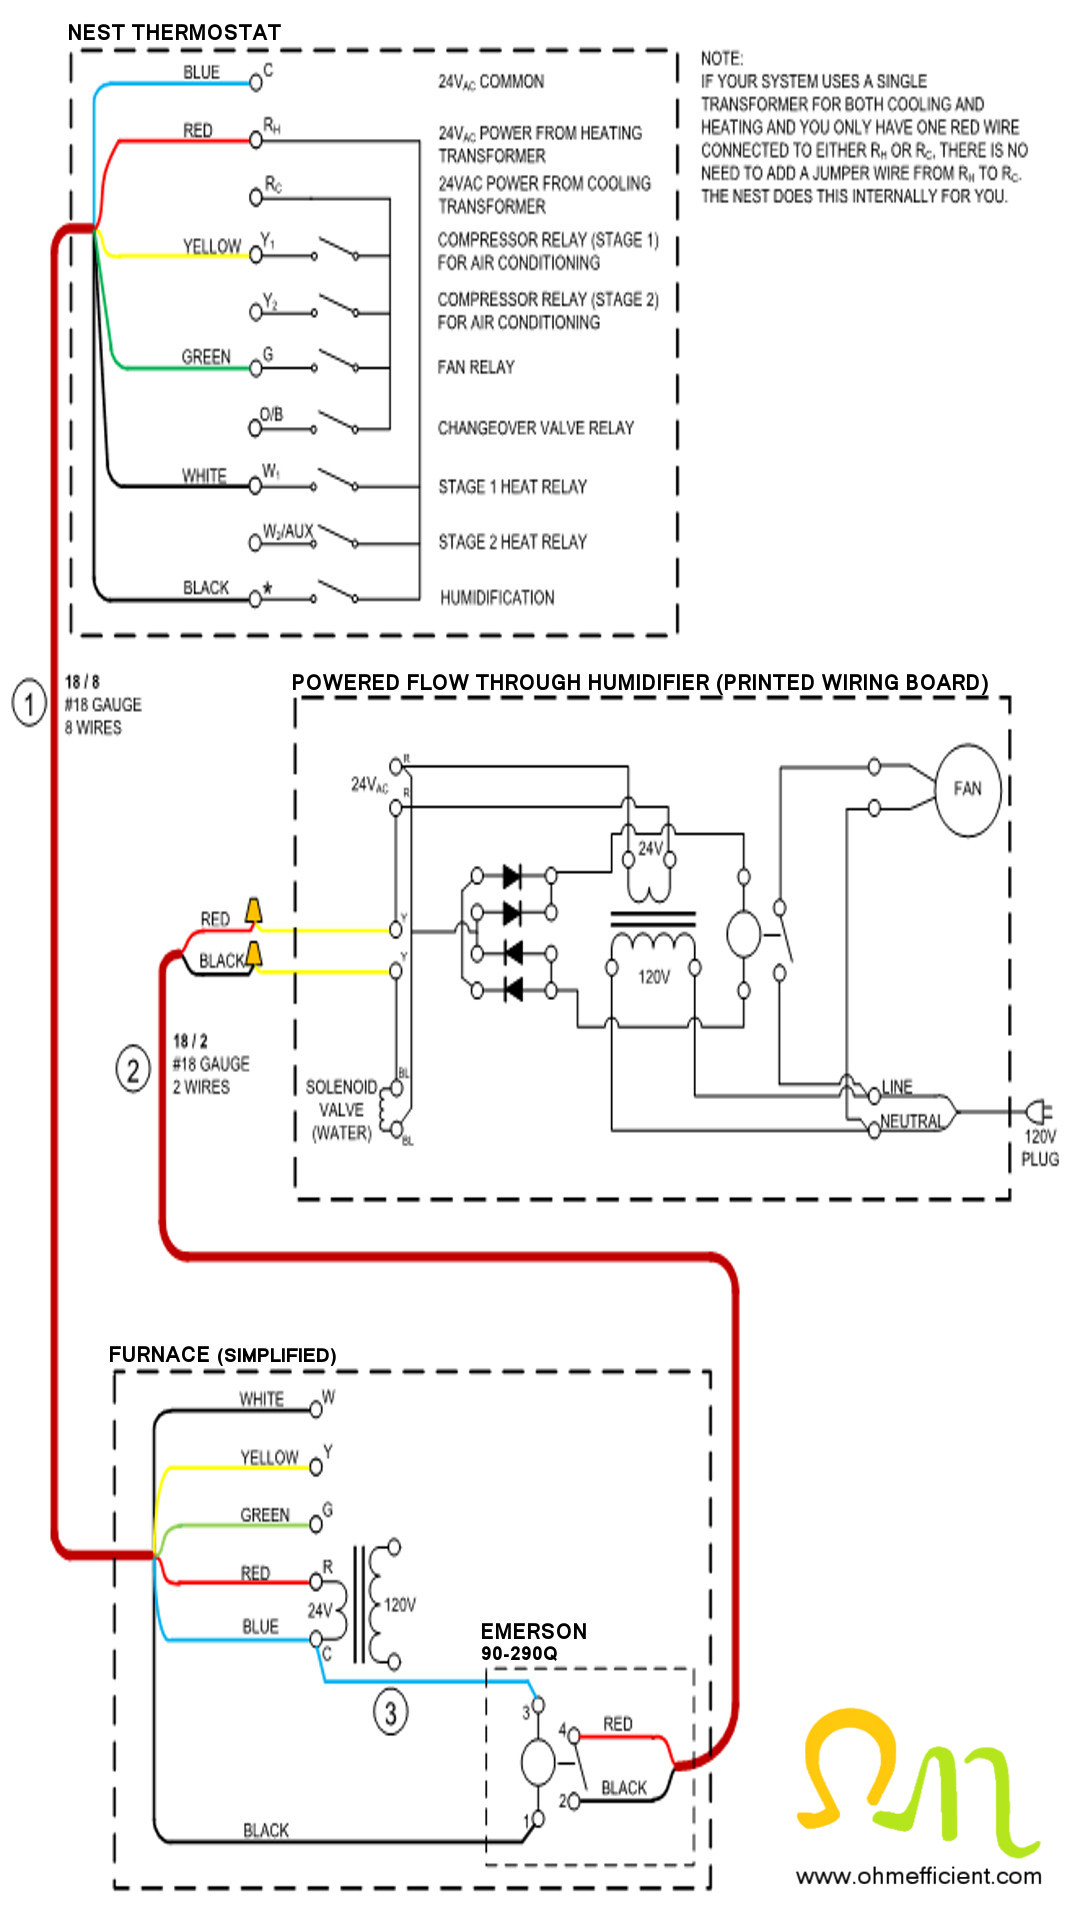 How To Connect & Setup A Nest Thermostat To Function As A Humidistat - Nest Gen 3 Humidifier Wiring Diagram